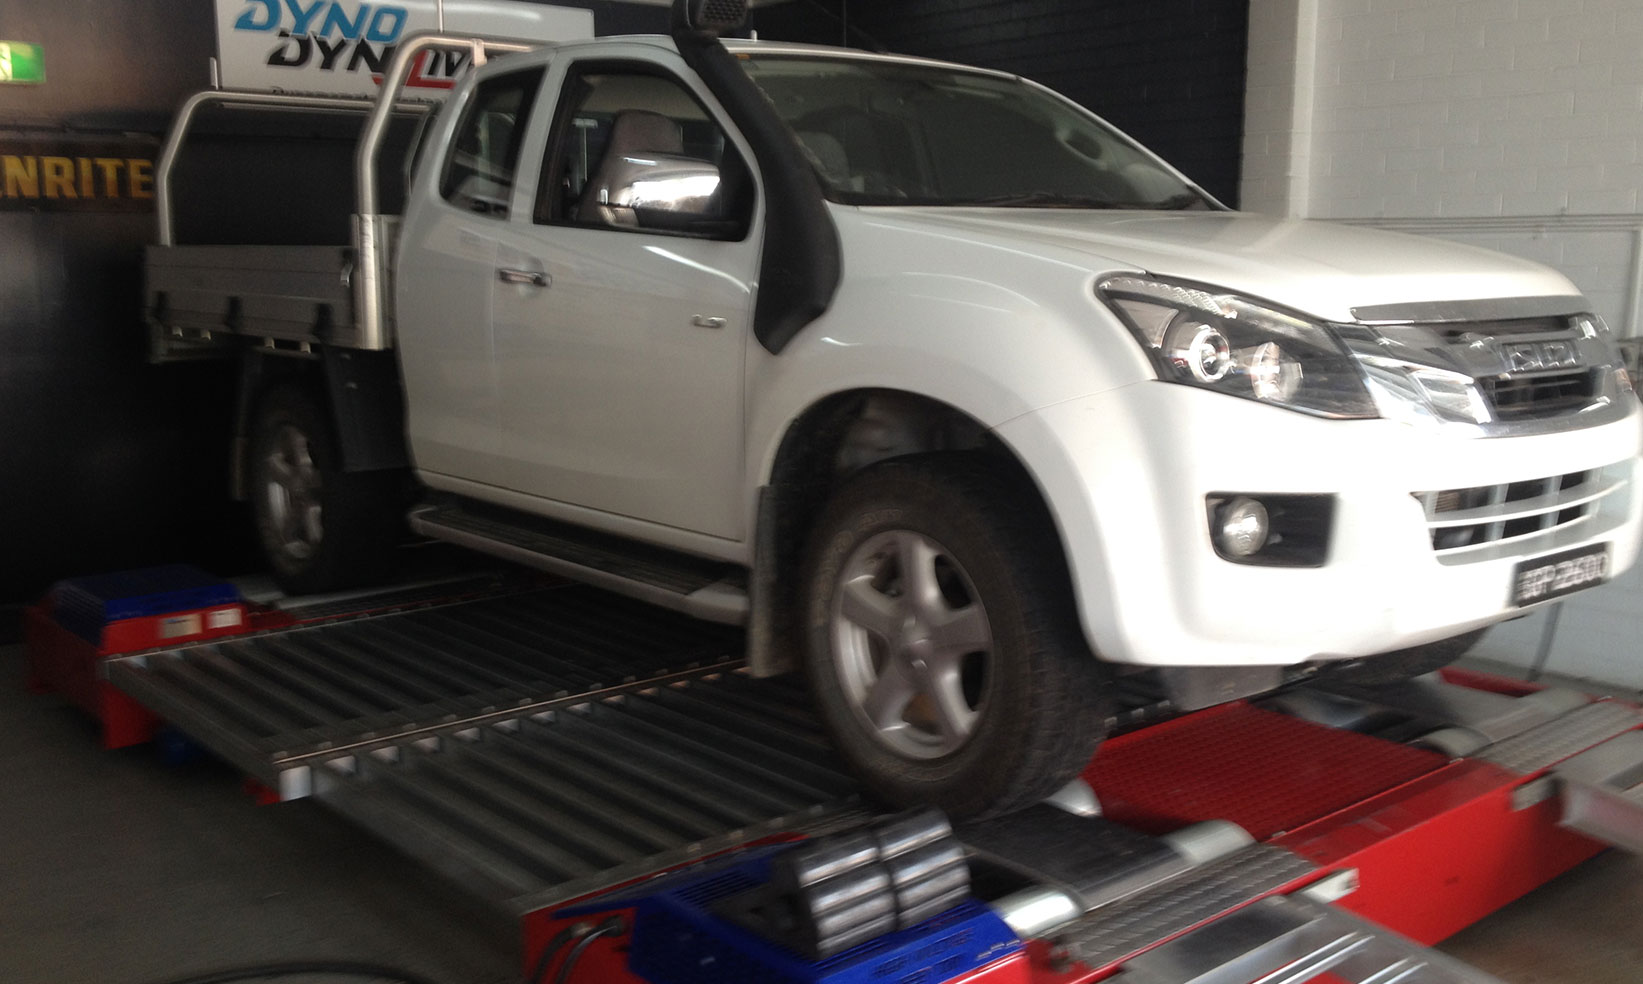 Vehicle Servicing, Repairs, upgrades - Specialised Automotive - Specialised Automotive